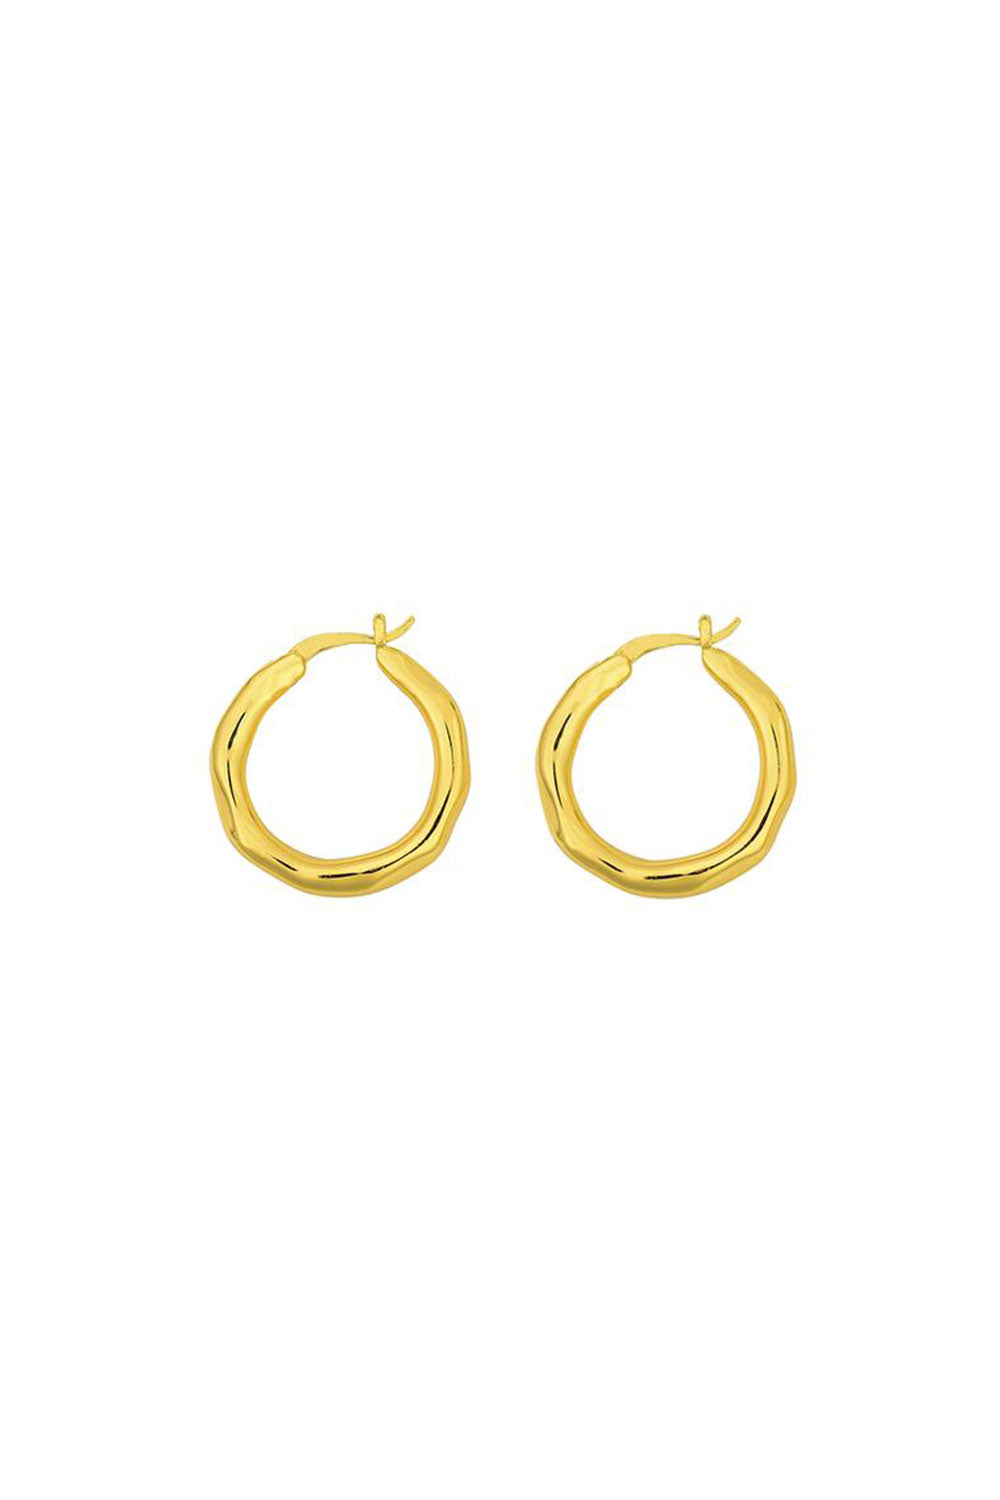 ORGANICA HOOPS SMALL | GOLD | BRIE LEON NZ | Jewellery NZ | Black Box Boutique Auckland | Womens Fashion NZ